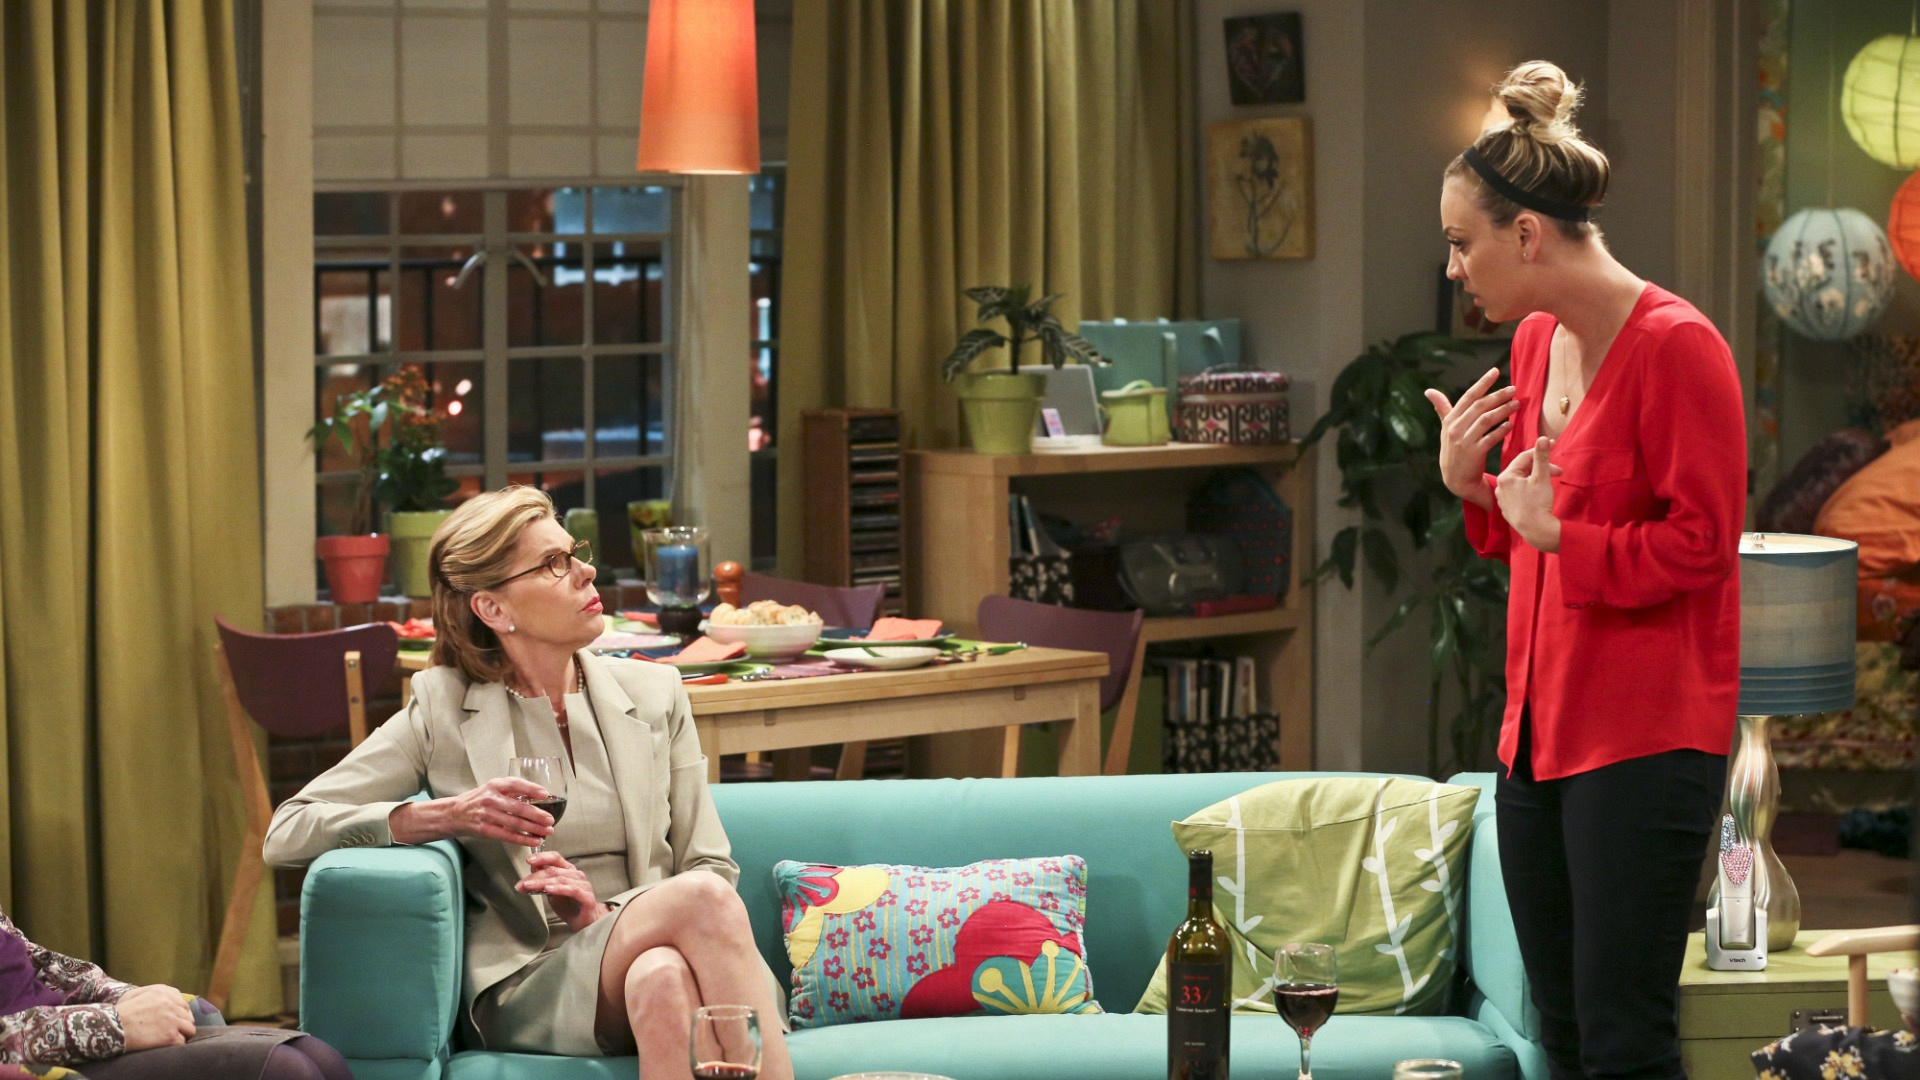 Penny confronts Beverly about building their relationship.